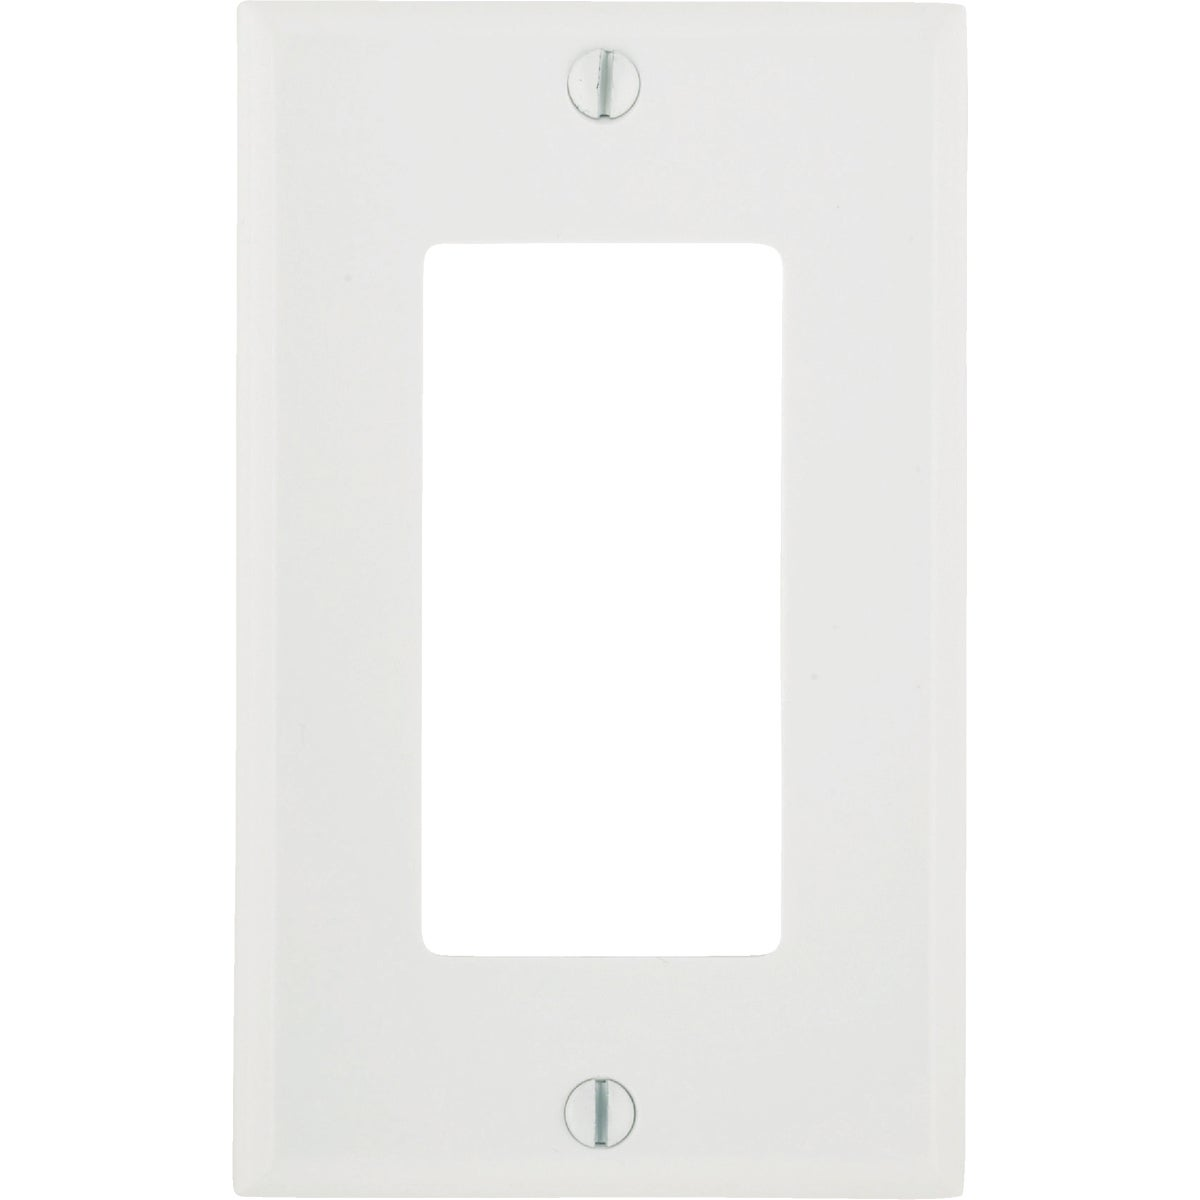 WHT WALL PLATE - 021-80401-00W by Leviton Mfg Co